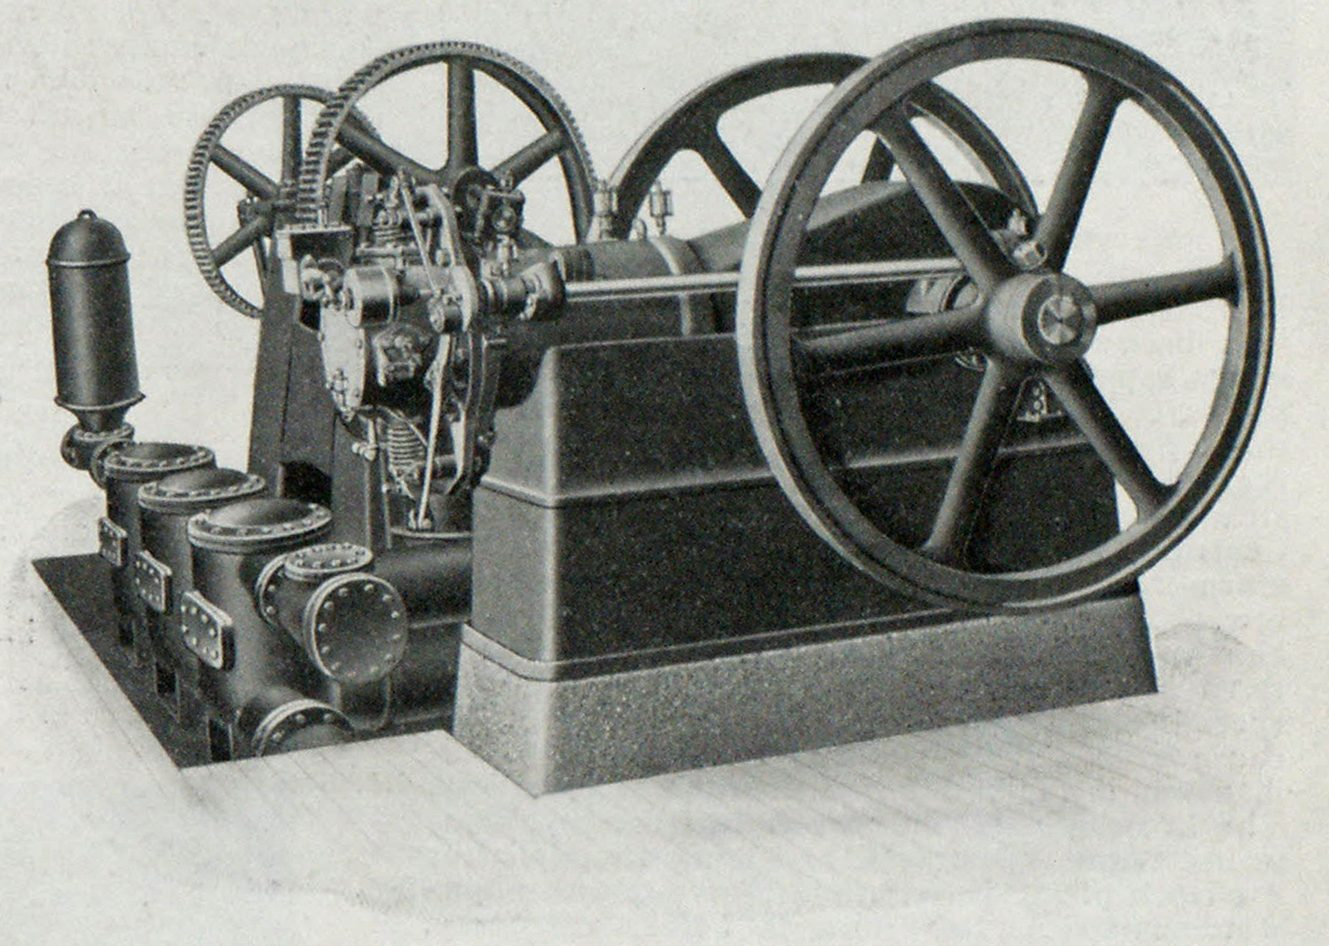 FIG. 10—ENGINE DESIGNED TO OPERATE WITH HEAVY OILS.